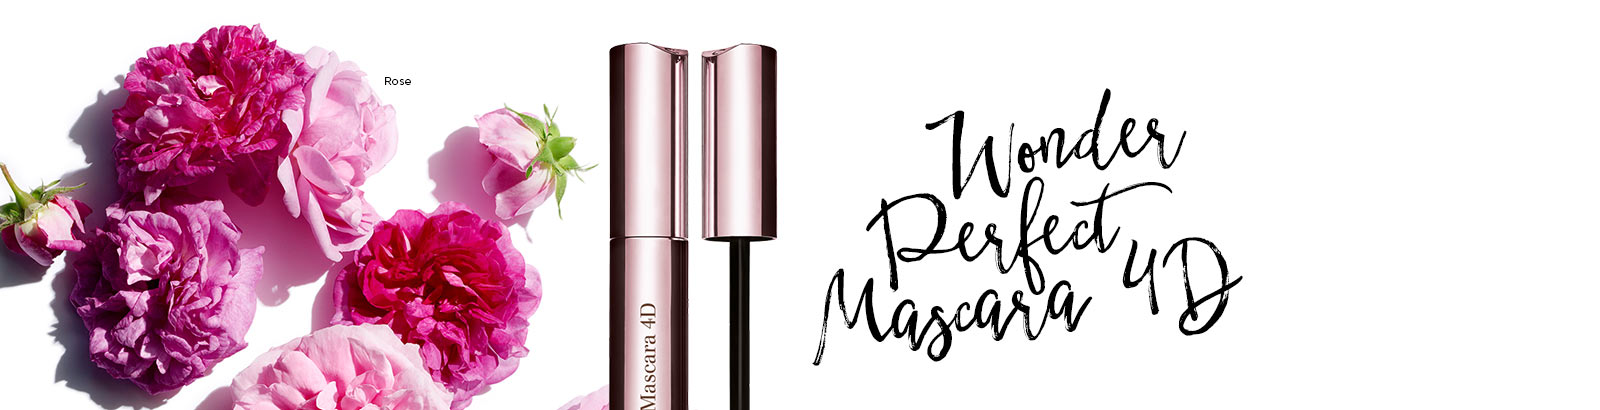 Volume, Length, Curl, Definition: Our new 4D mascara has arrived!